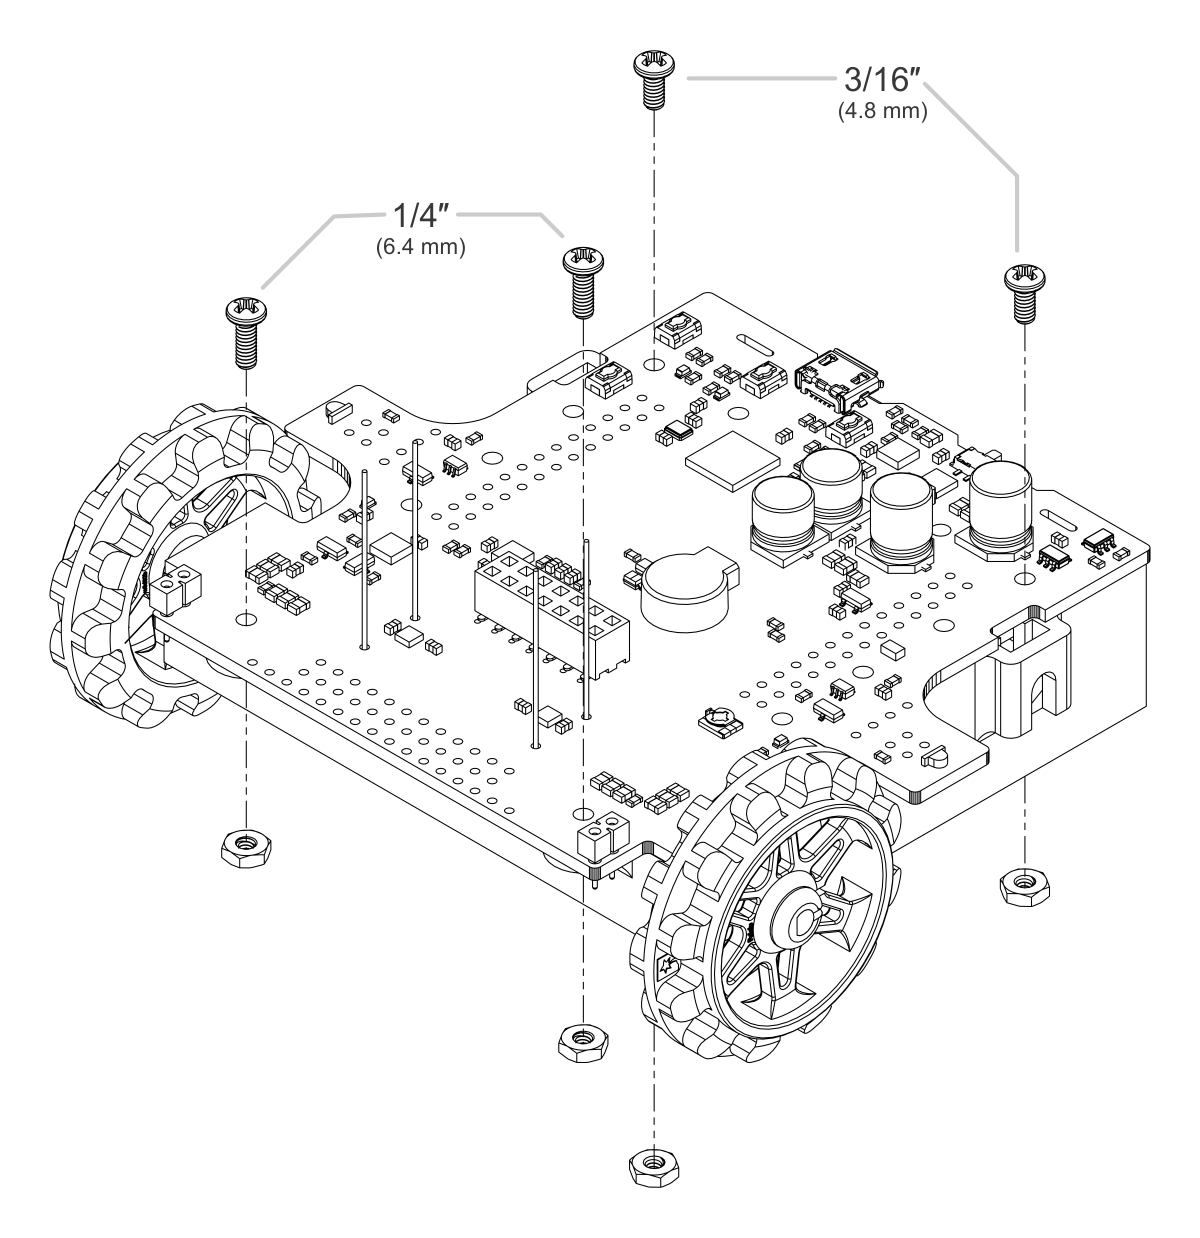 Pololu Zumo 32u4 Robot Users Guide Pin8 Powers The Two Motors And Should Be Connected To Longer Screws Are Intended For Use In Front Holes Near So That